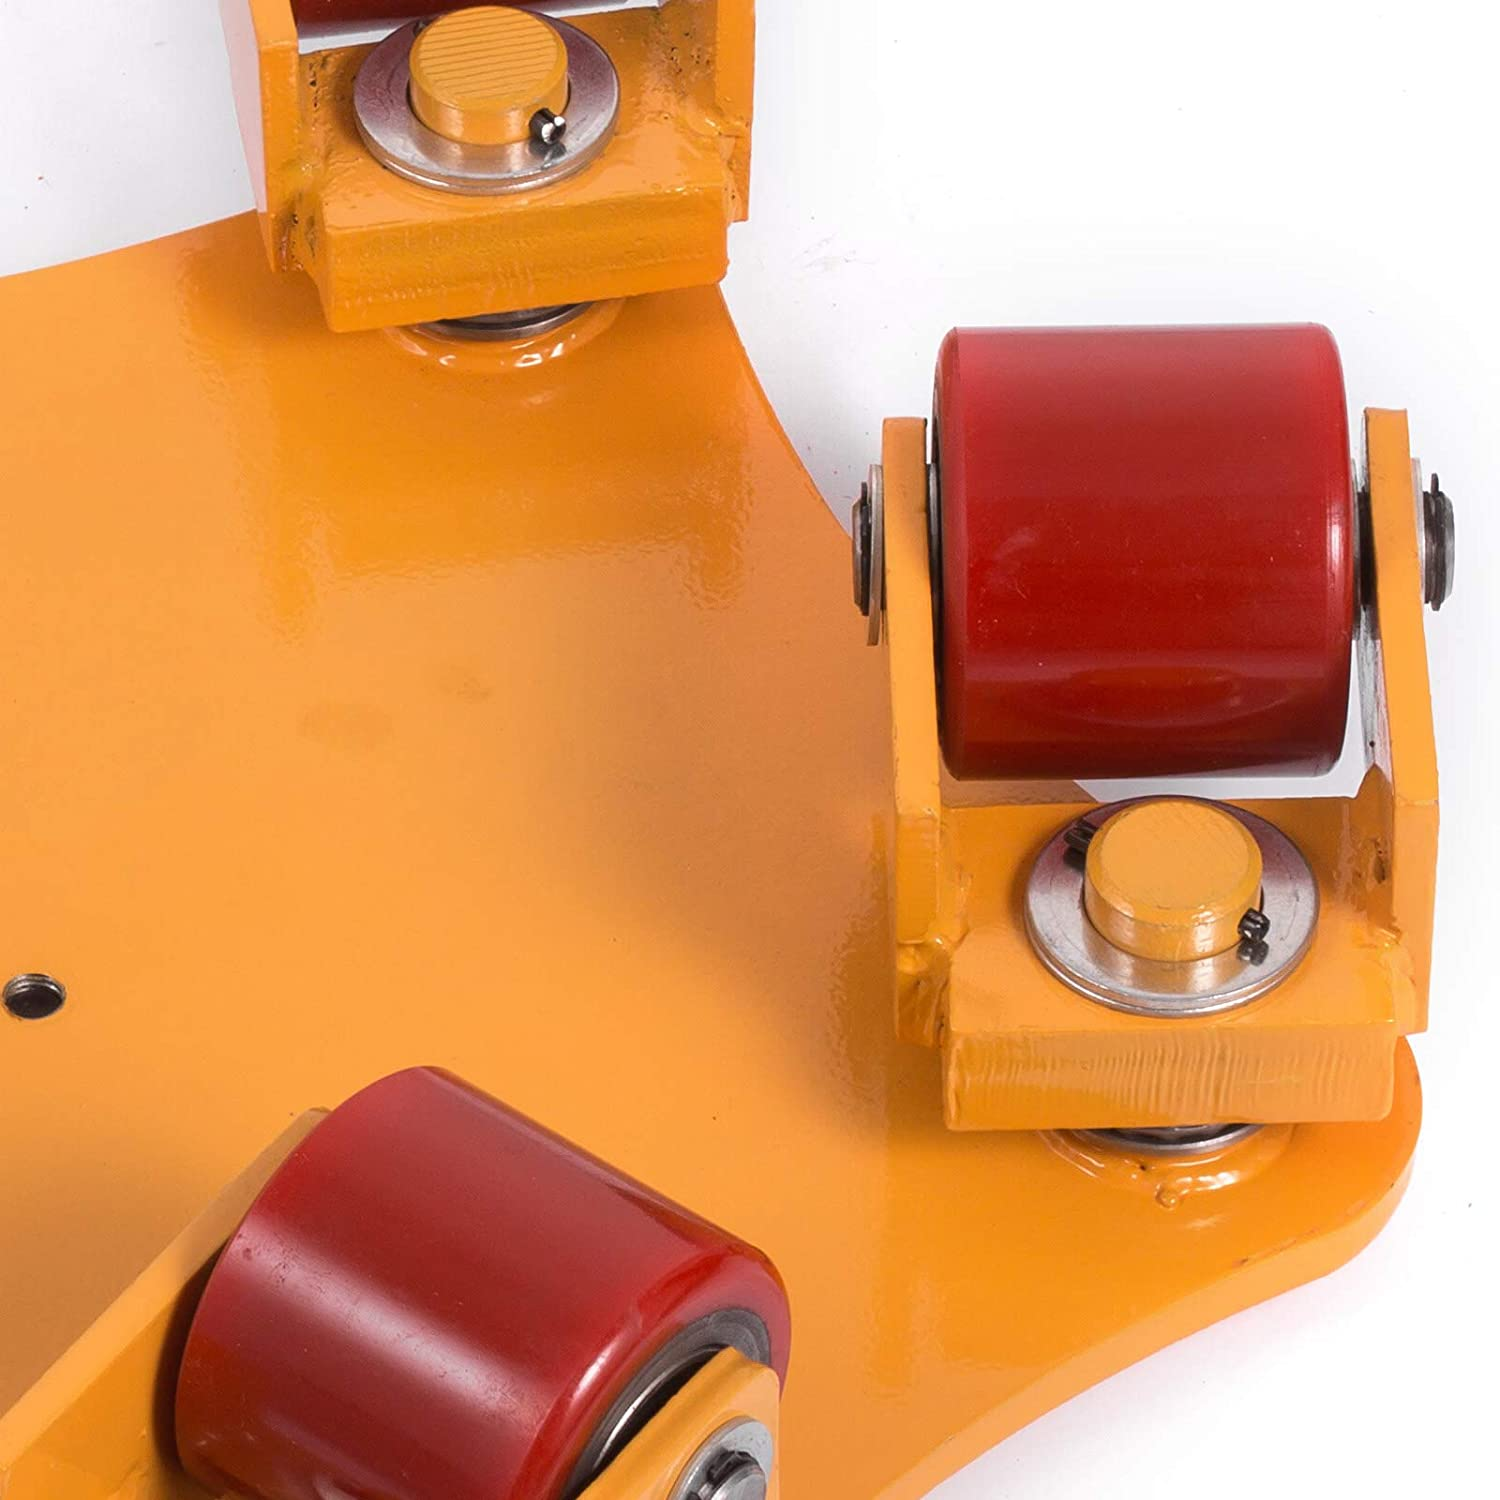 OrangeA Industrial Machinery Mover 13200-lb Machinery Skate w// Steel Rollers Cap 360 Degree Rotation